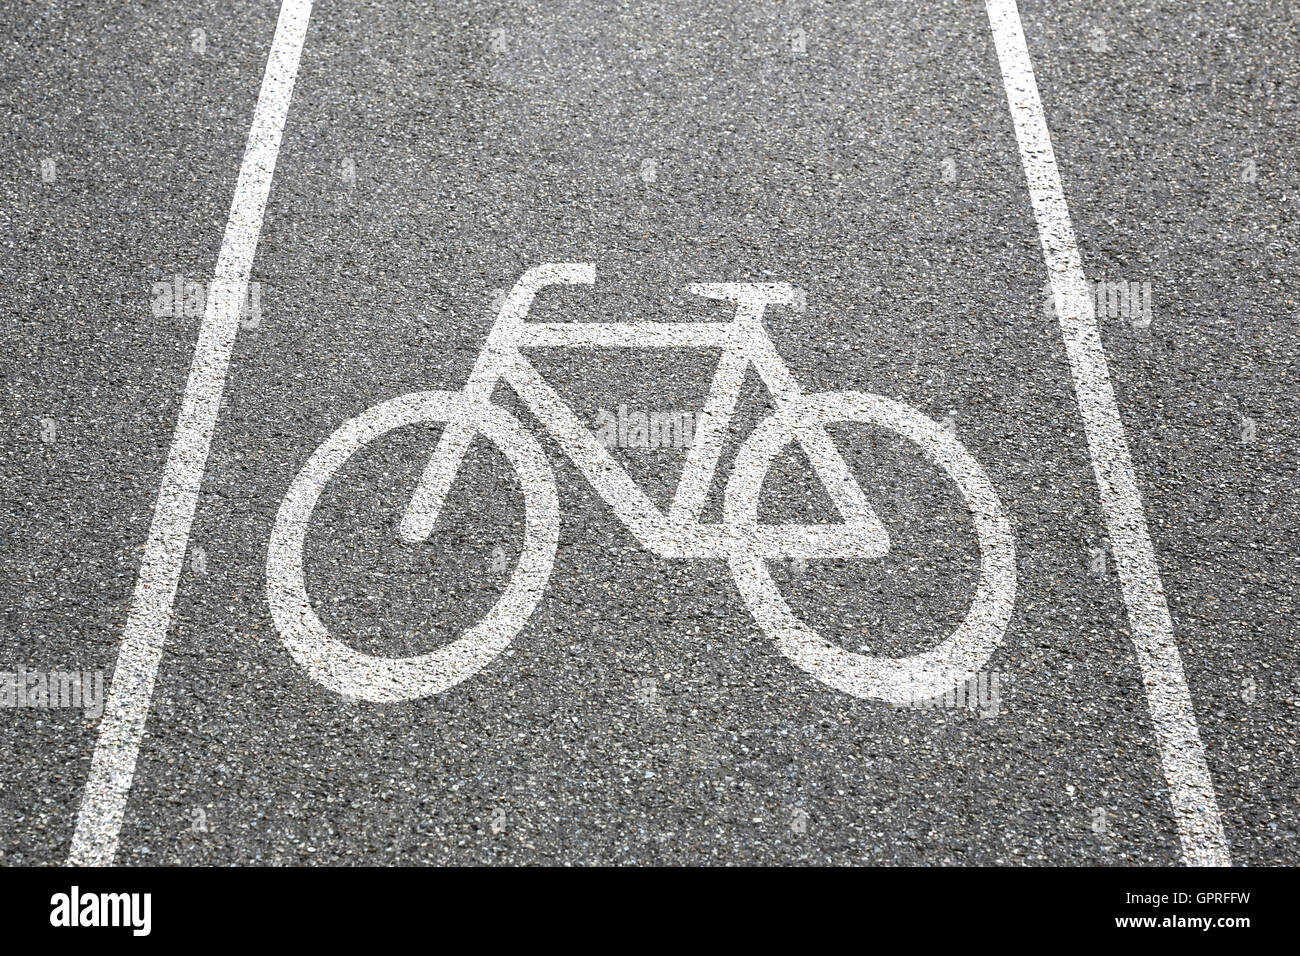 Bike lane path way cycle bicycle road traffic town city transport - Stock Image